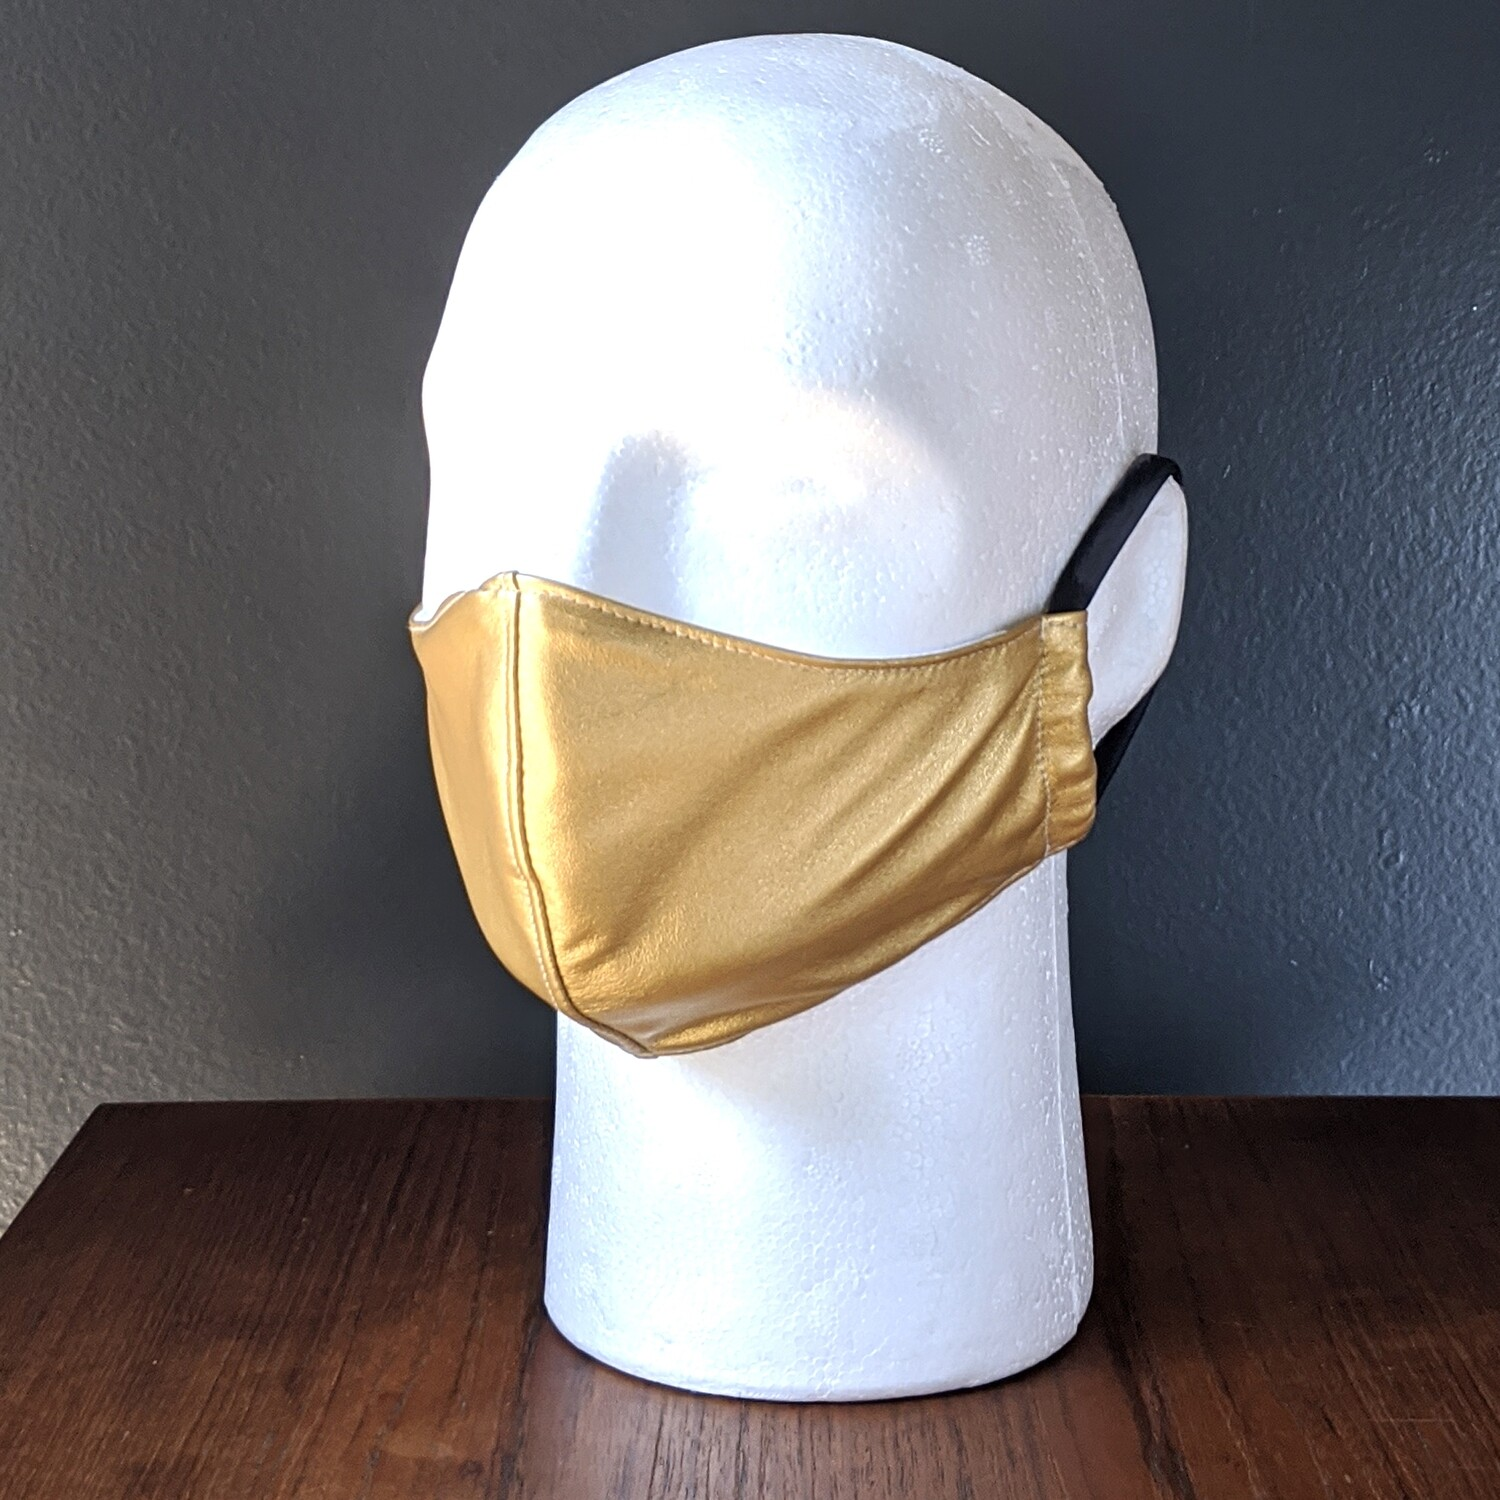 Metallic Gold Costume Face Mask, Pride, Mardi Gras, Halloween. Small, Unisex, Reusable, Double Layer for Smog, Pollen, Dust, Smoke. Made in USA